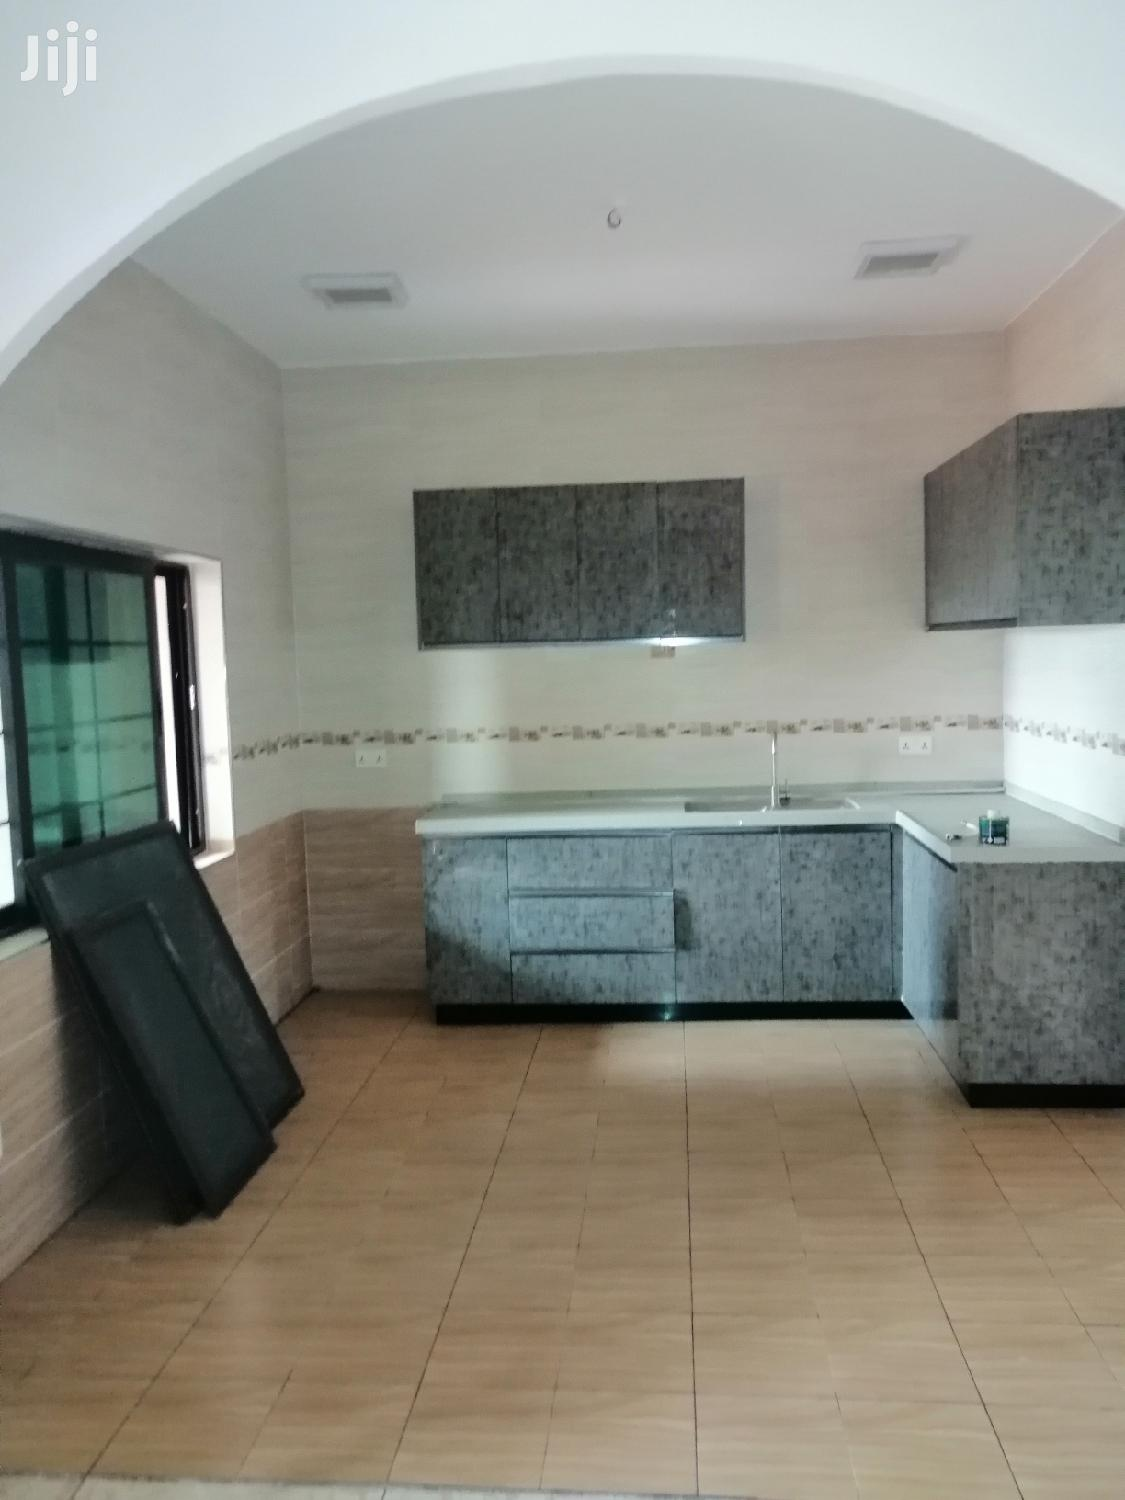 2 Bedroom Apartments For Rent At Tema Golf City | Houses & Apartments For Rent for sale in Tema Metropolitan, Greater Accra, Ghana